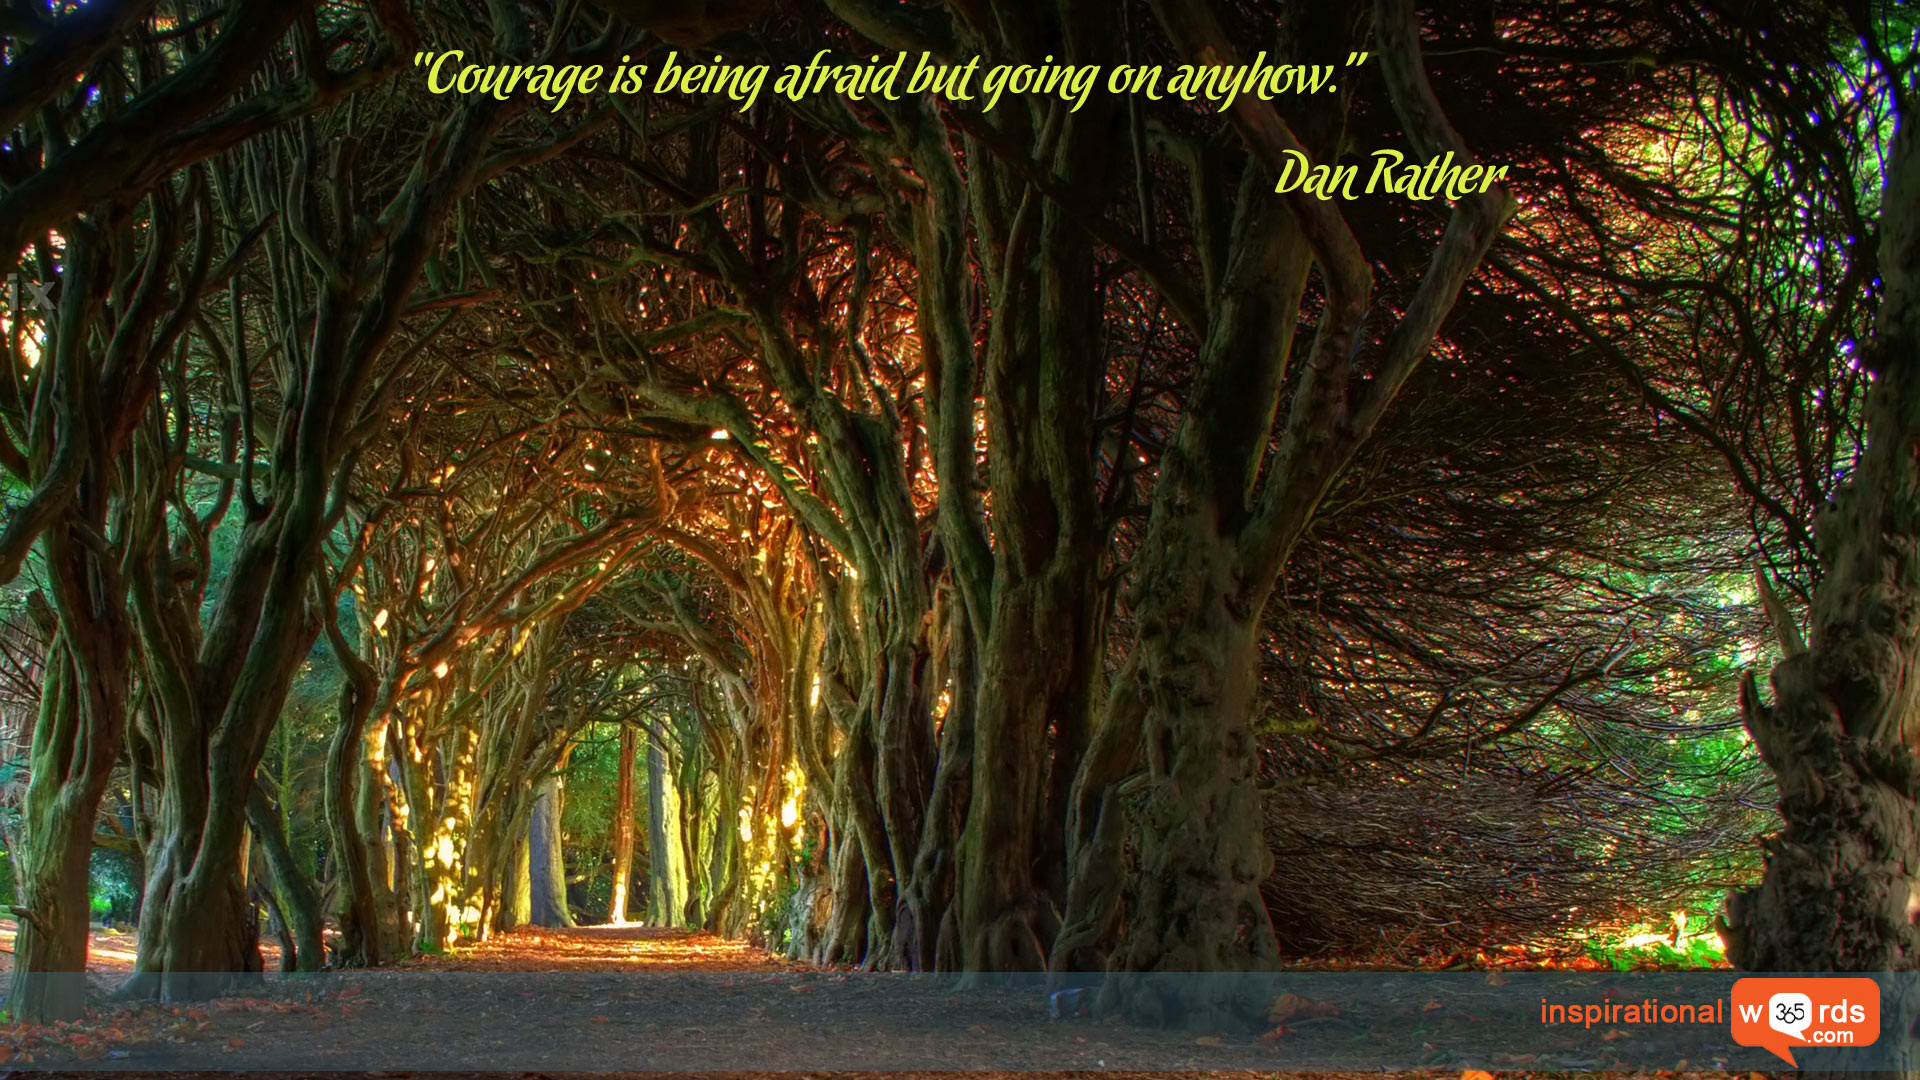 Inspirational Wallpaper Quote by Dan Rather